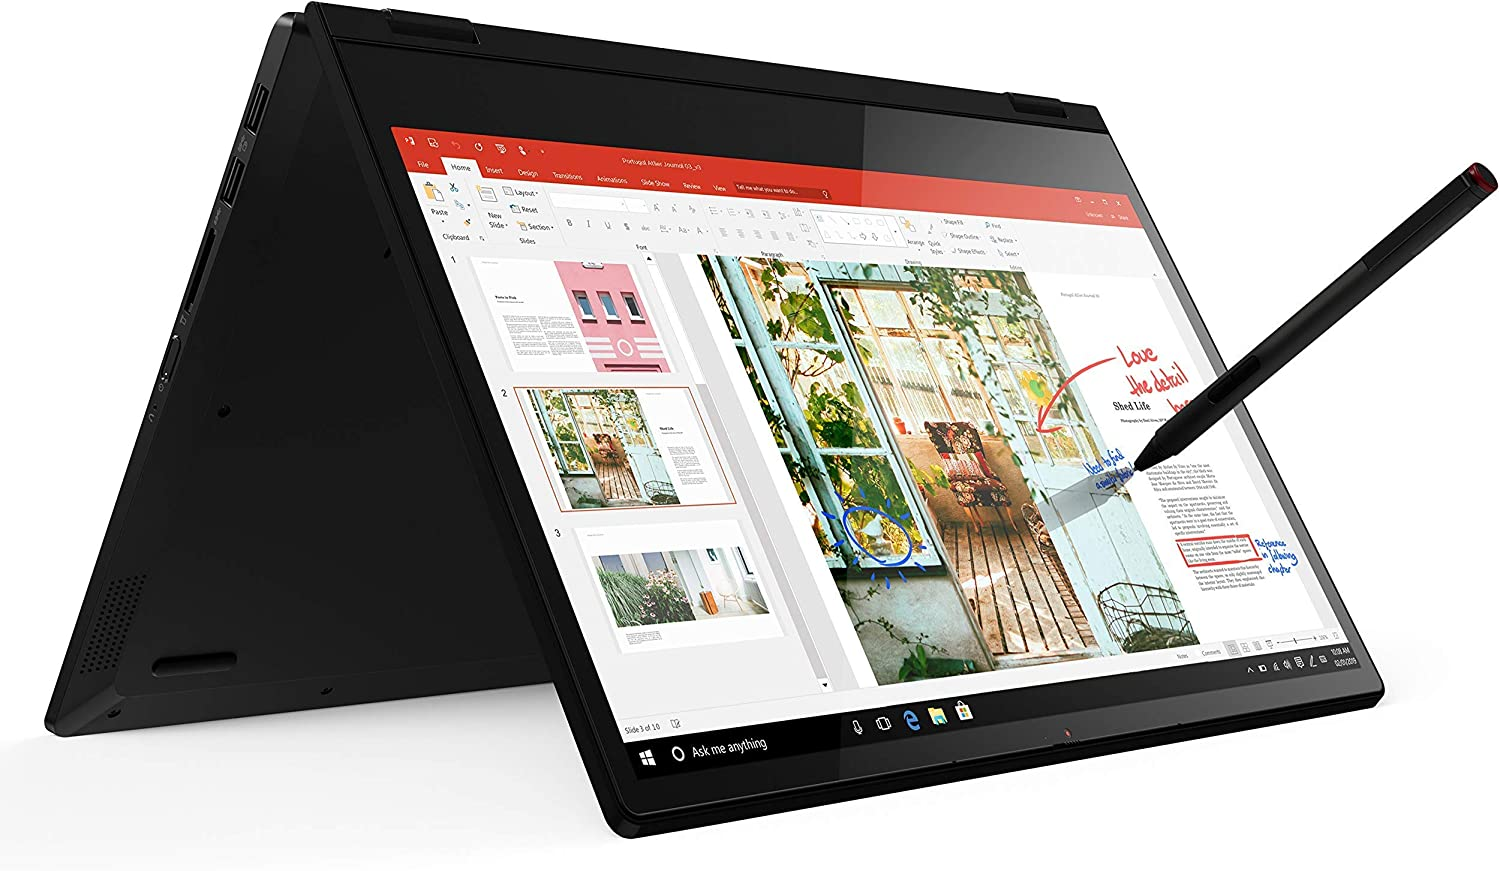 Lenovo Flex 14 2-in-1 Convertible Laptop, 14 Inch FHD, Touchscreen, AMD Ryzen 5 3500U Processor, Radeon Vega 8 Graphics, 8GB DDR4 RAM, 256GB NVMe SSD, Win 10, Black, Pen Included (Renewed)